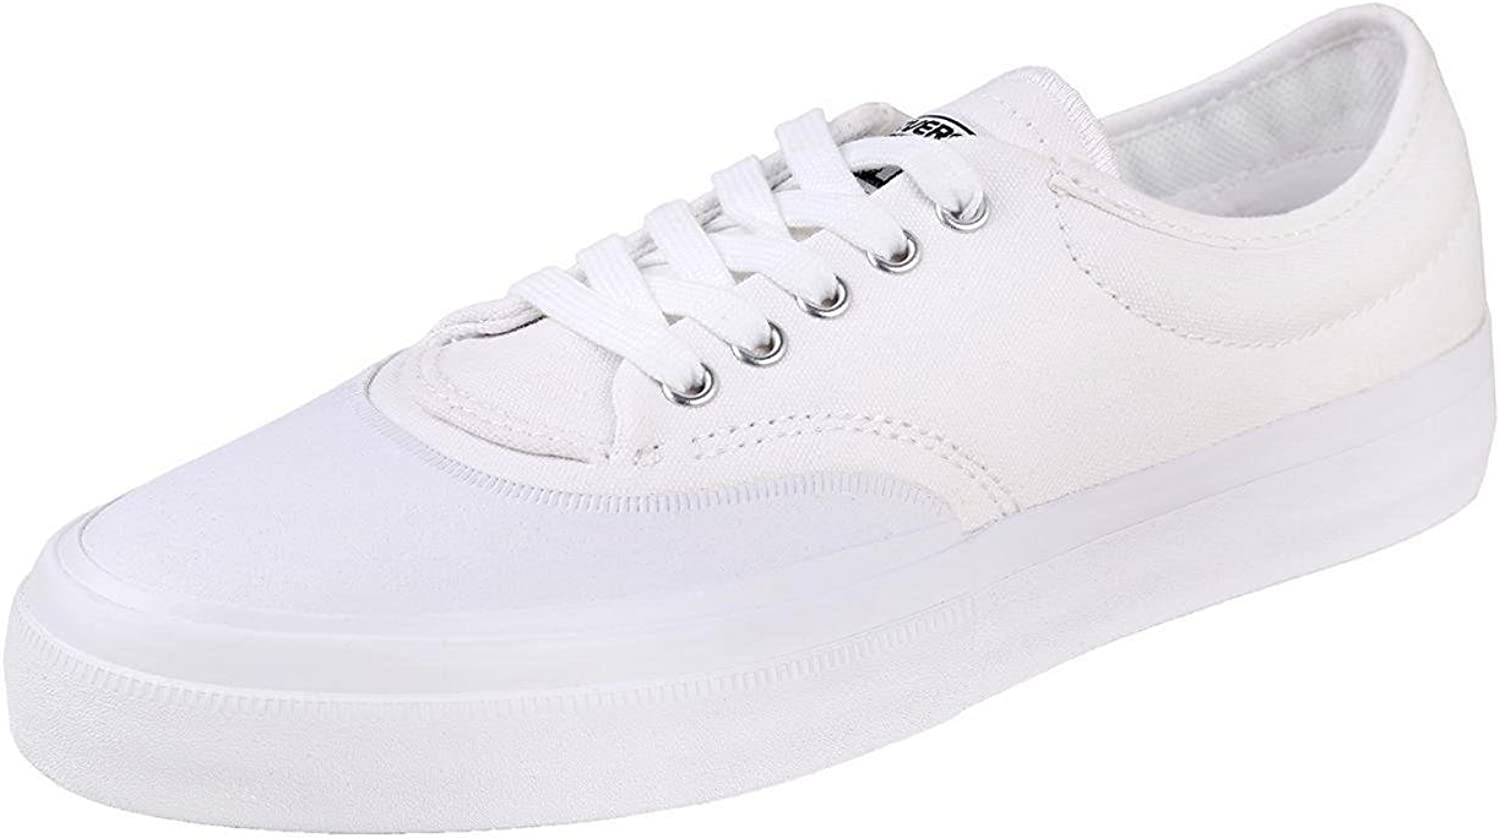 Converse Crimson Core Canvas Ox White Black Natural Lace up Casual shoes.